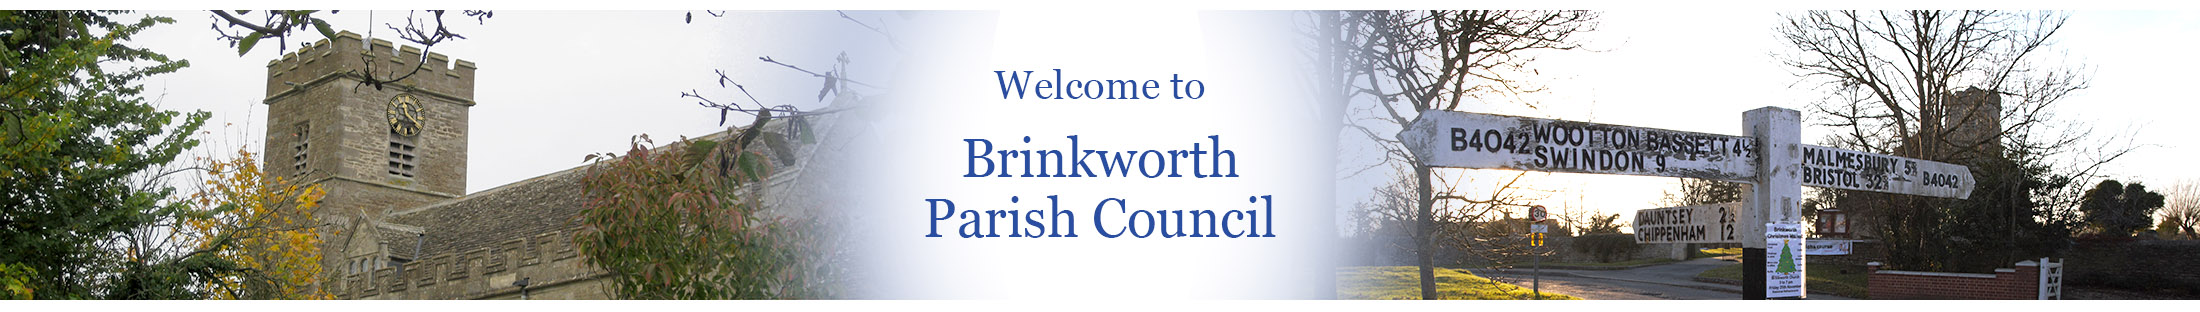 Header Image for Brinkworth Parish Council